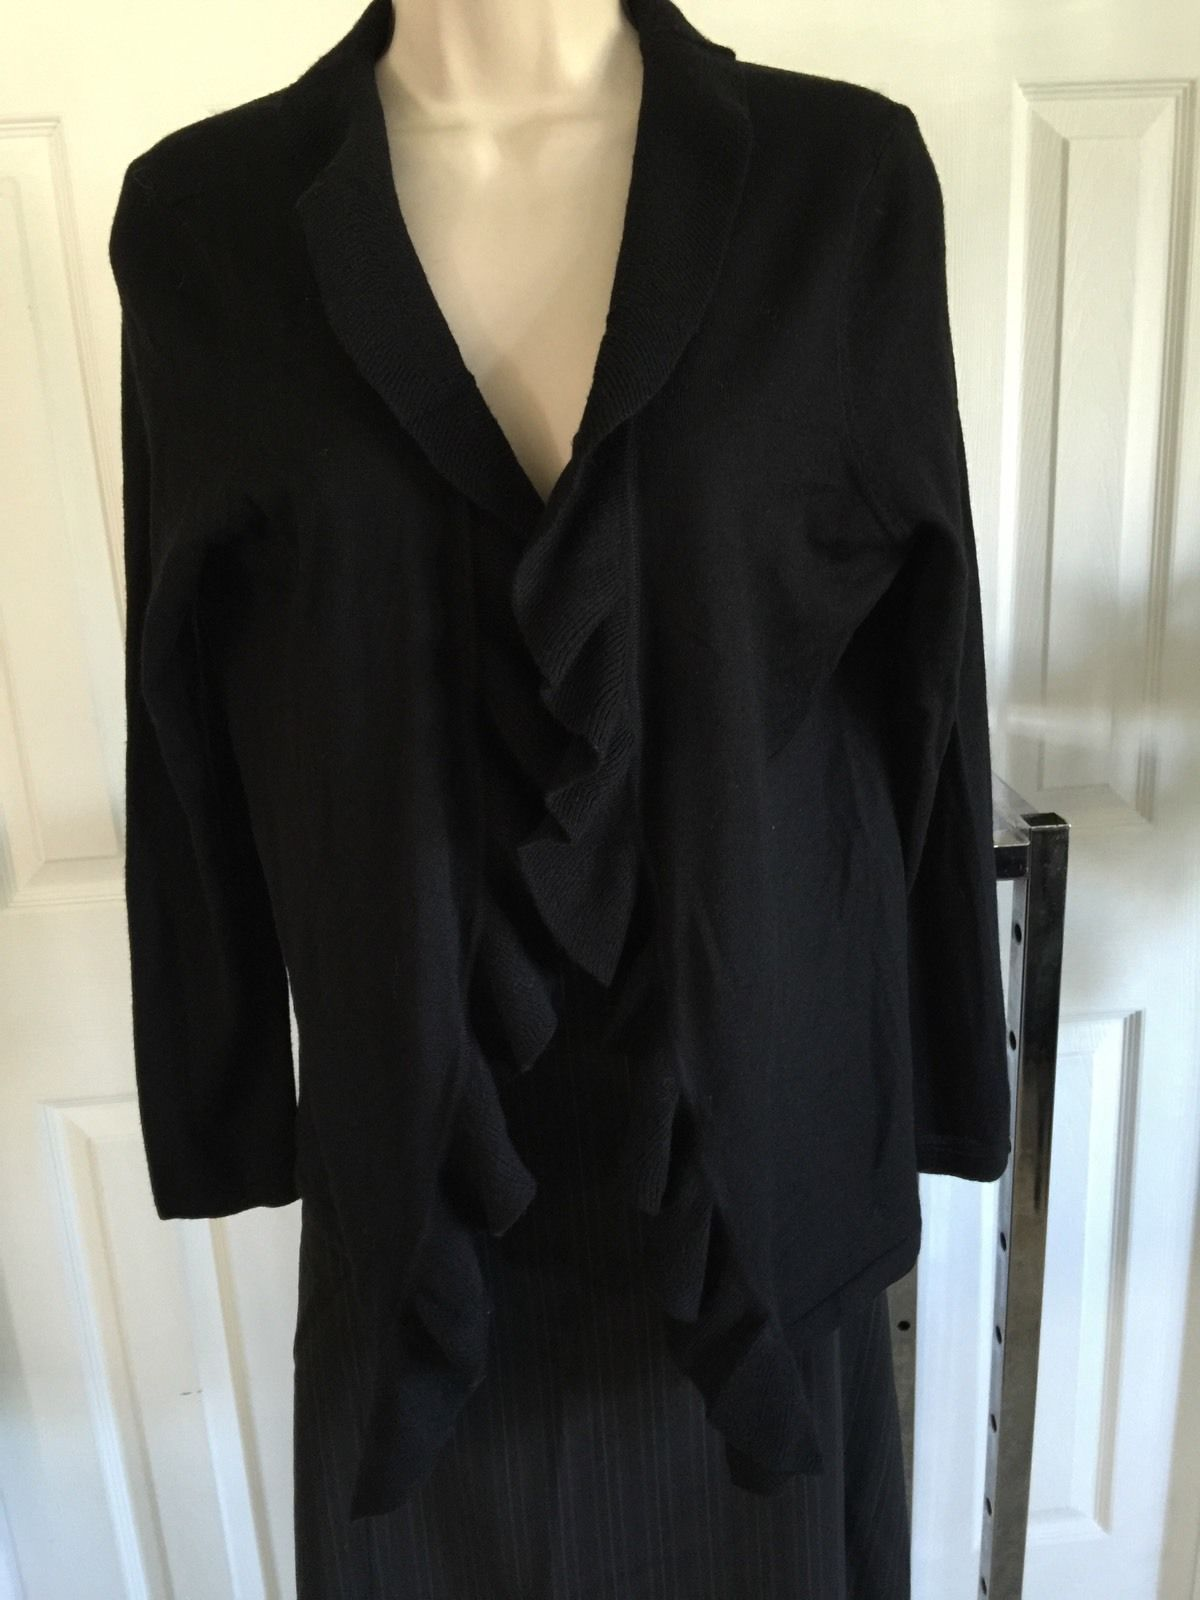 Talbots petite all merino wool cardigan sweater black ruffle front ...